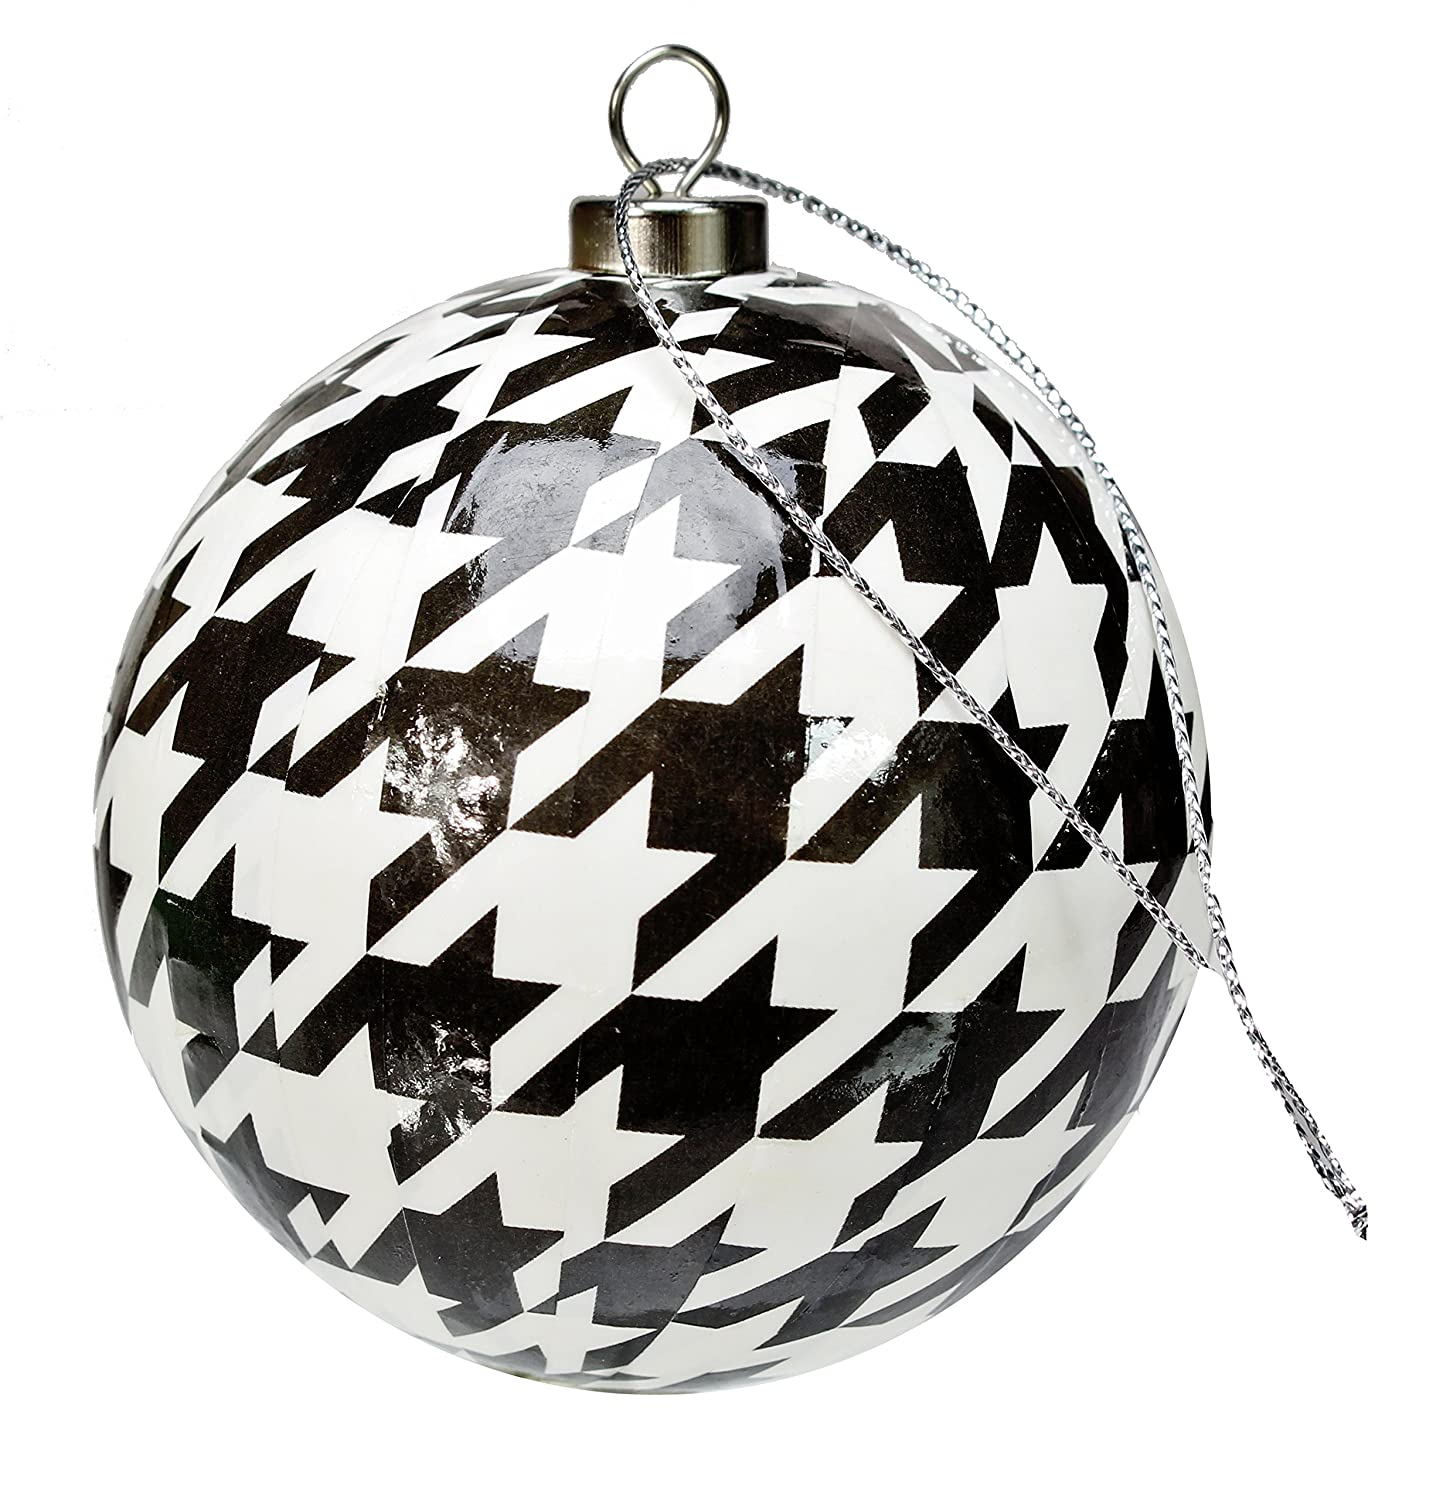 Polka dot christmas ornaments - Amazon Com Houndstooth Christmas Ornaments 4pk Black White Home Kitchen